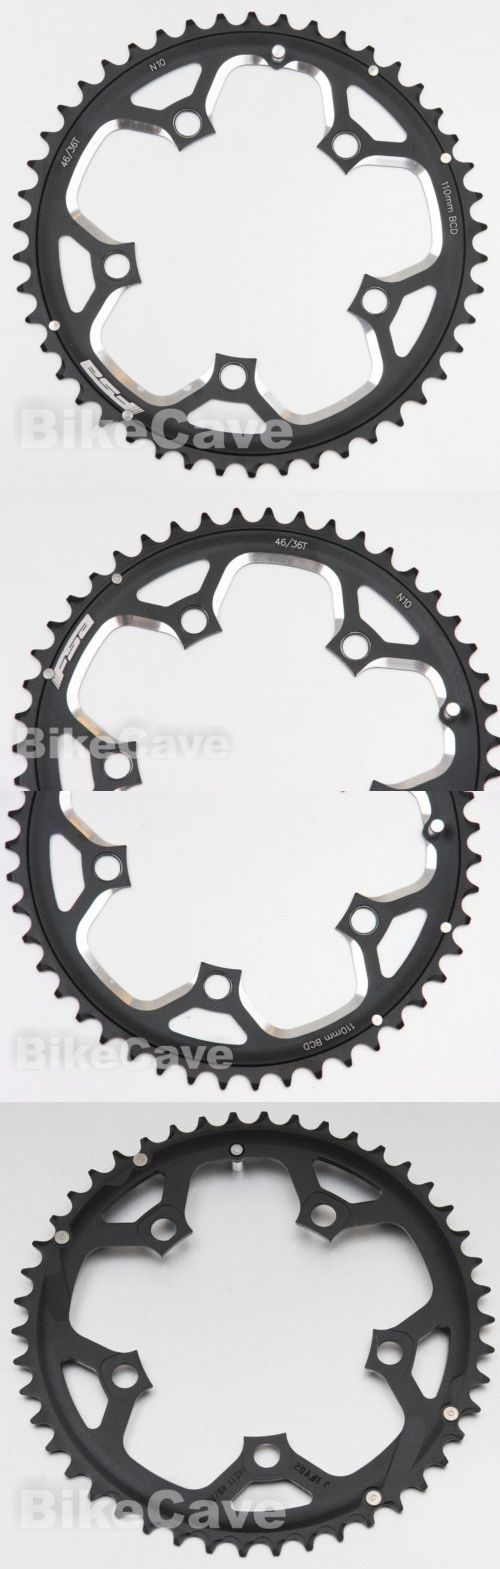 Chainrings and BMX Sprockets 177811: Fsa 46T 110 Bcd Chainring Black Aluminum Ramped And Pinned 10 Speed N10 46 Tooth -> BUY IT NOW ONLY: $34.99 on eBay!